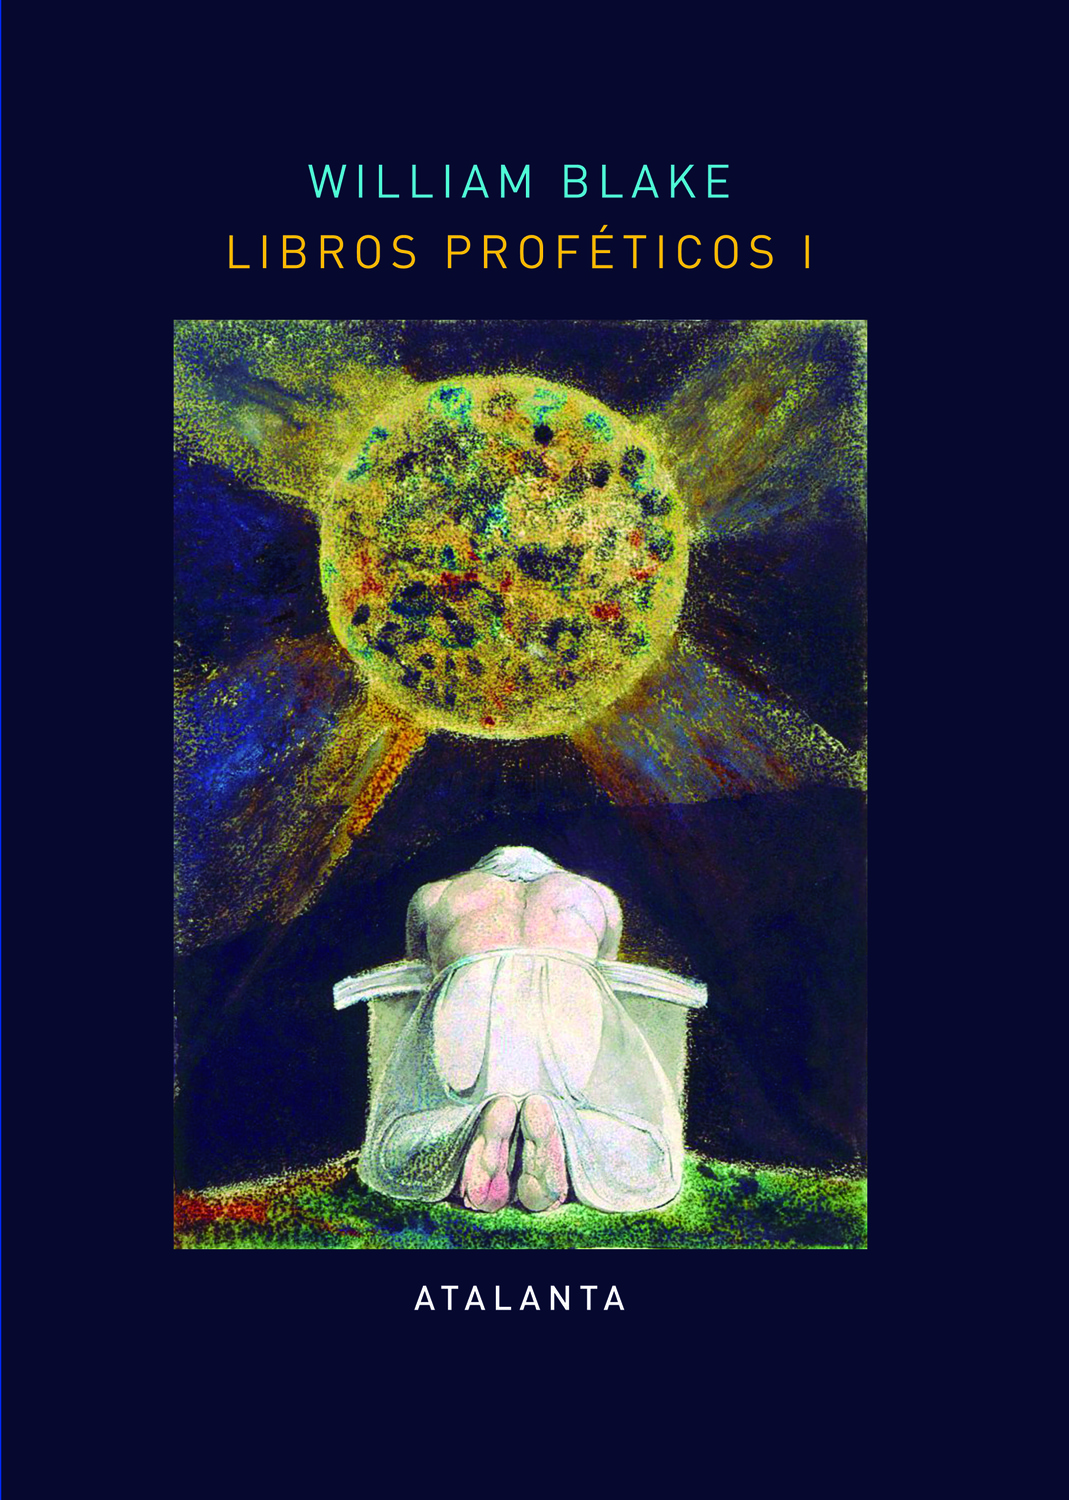 William Blake. Libros proféticos I. Editorial Atalanta